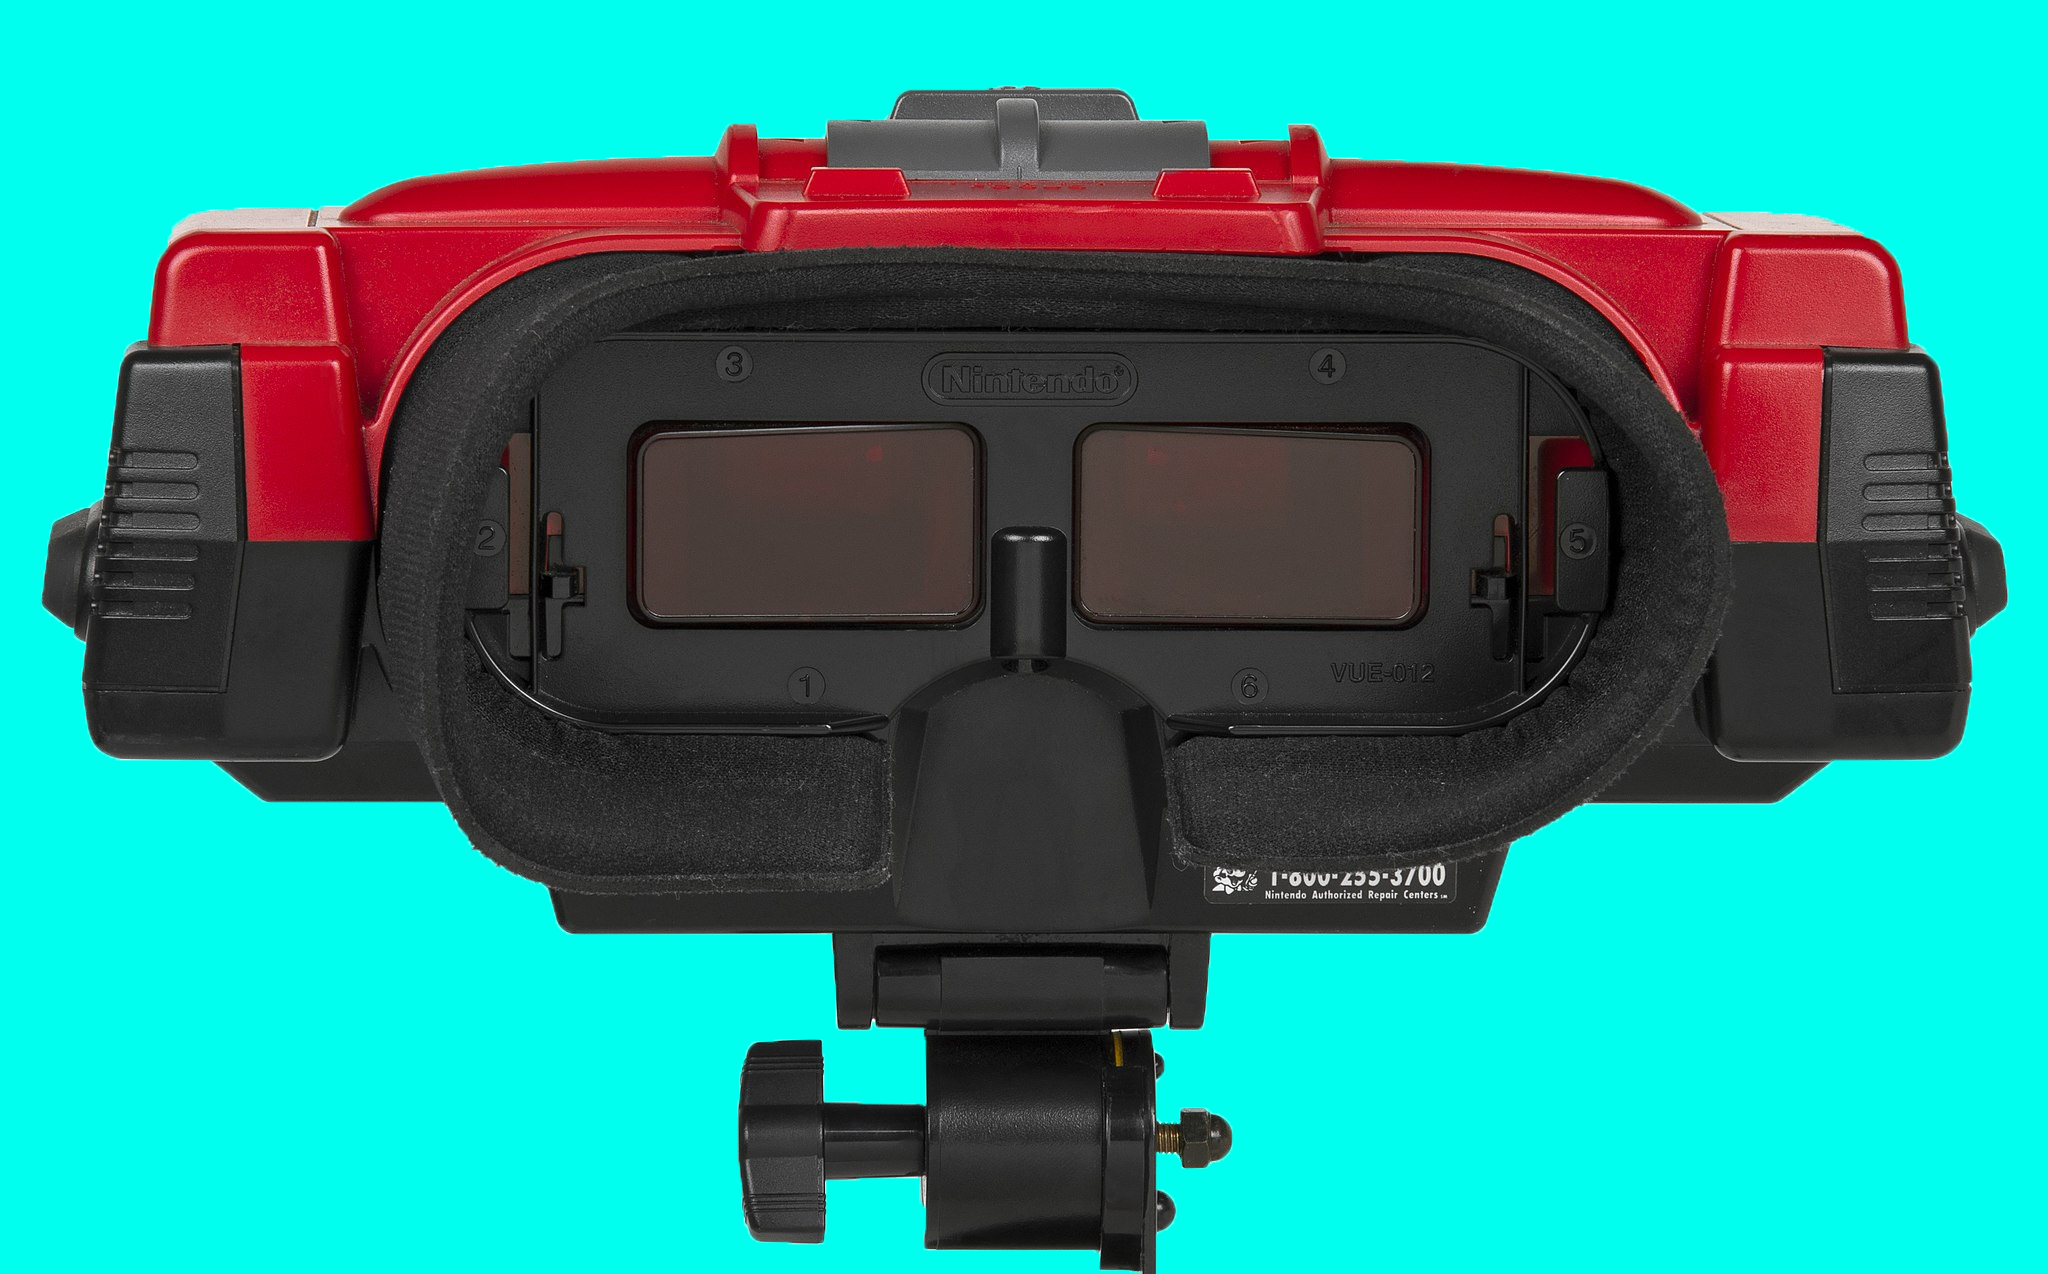 Save Your Eyes And Turn Your Virtual Boy Headset Into A Regular Console